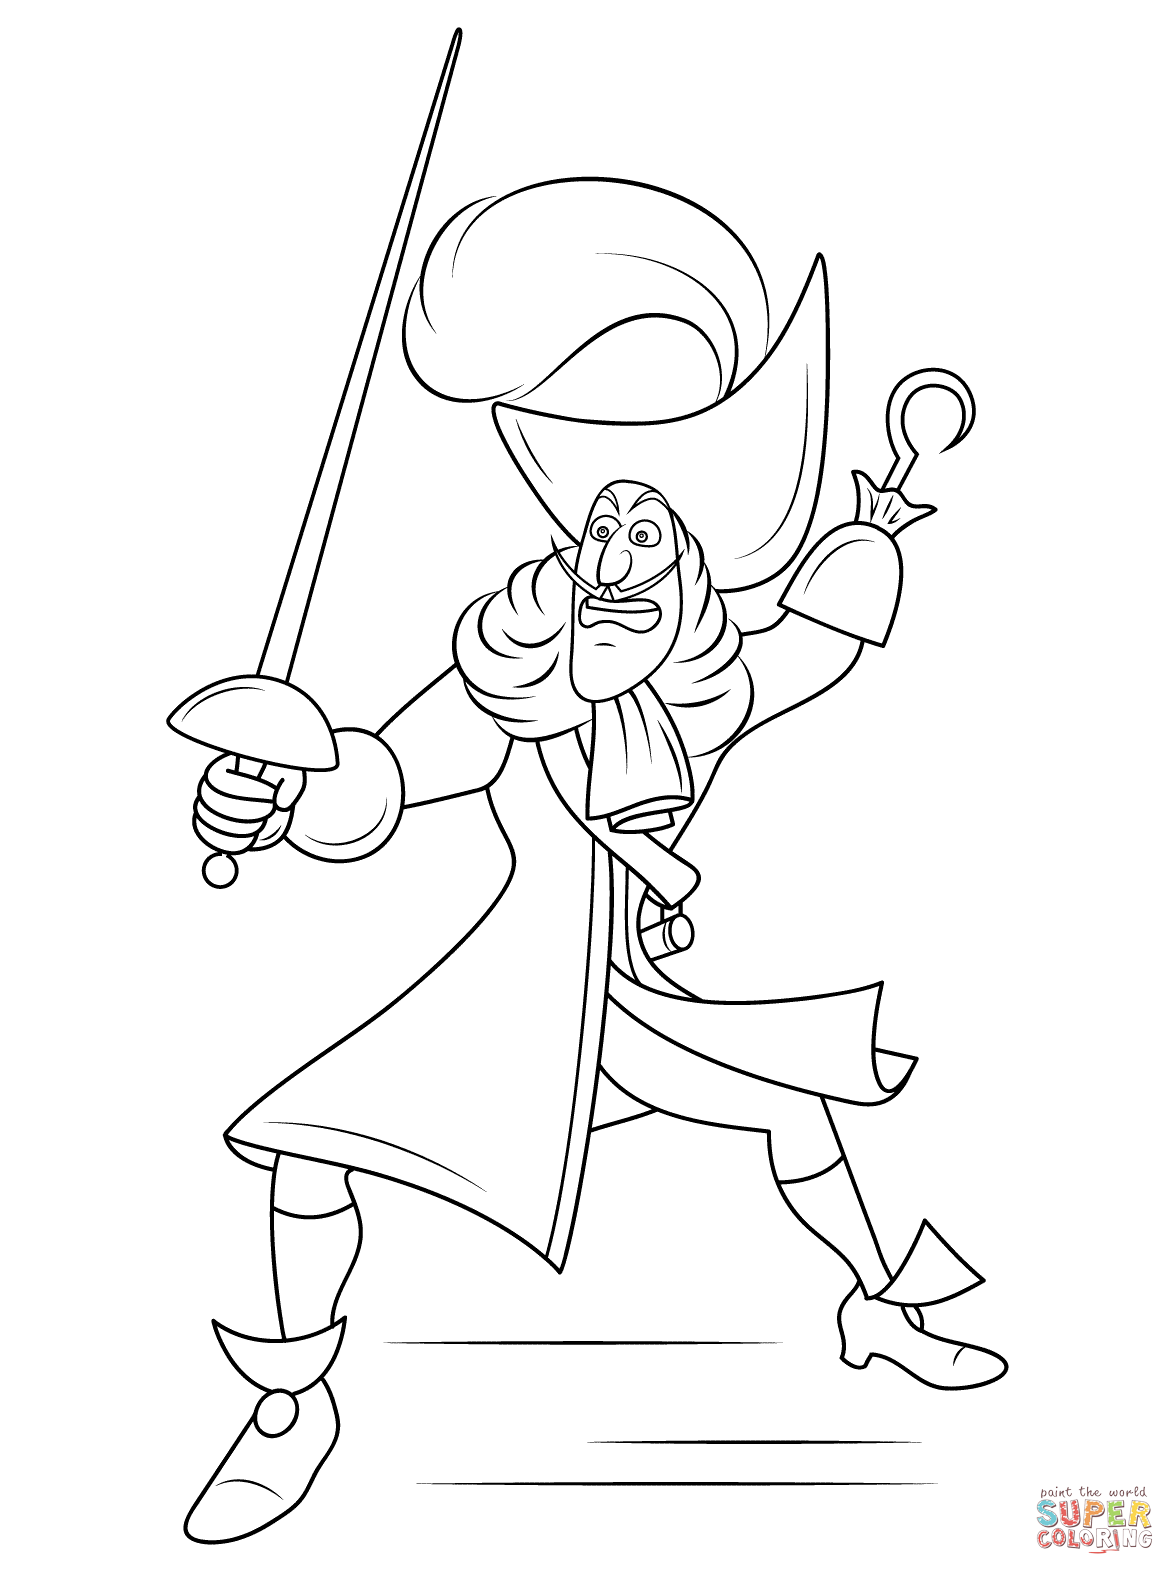 Captain Hook Coloring Pages Pirate Coloring Pages Coloring Pages Free Coloring Pages